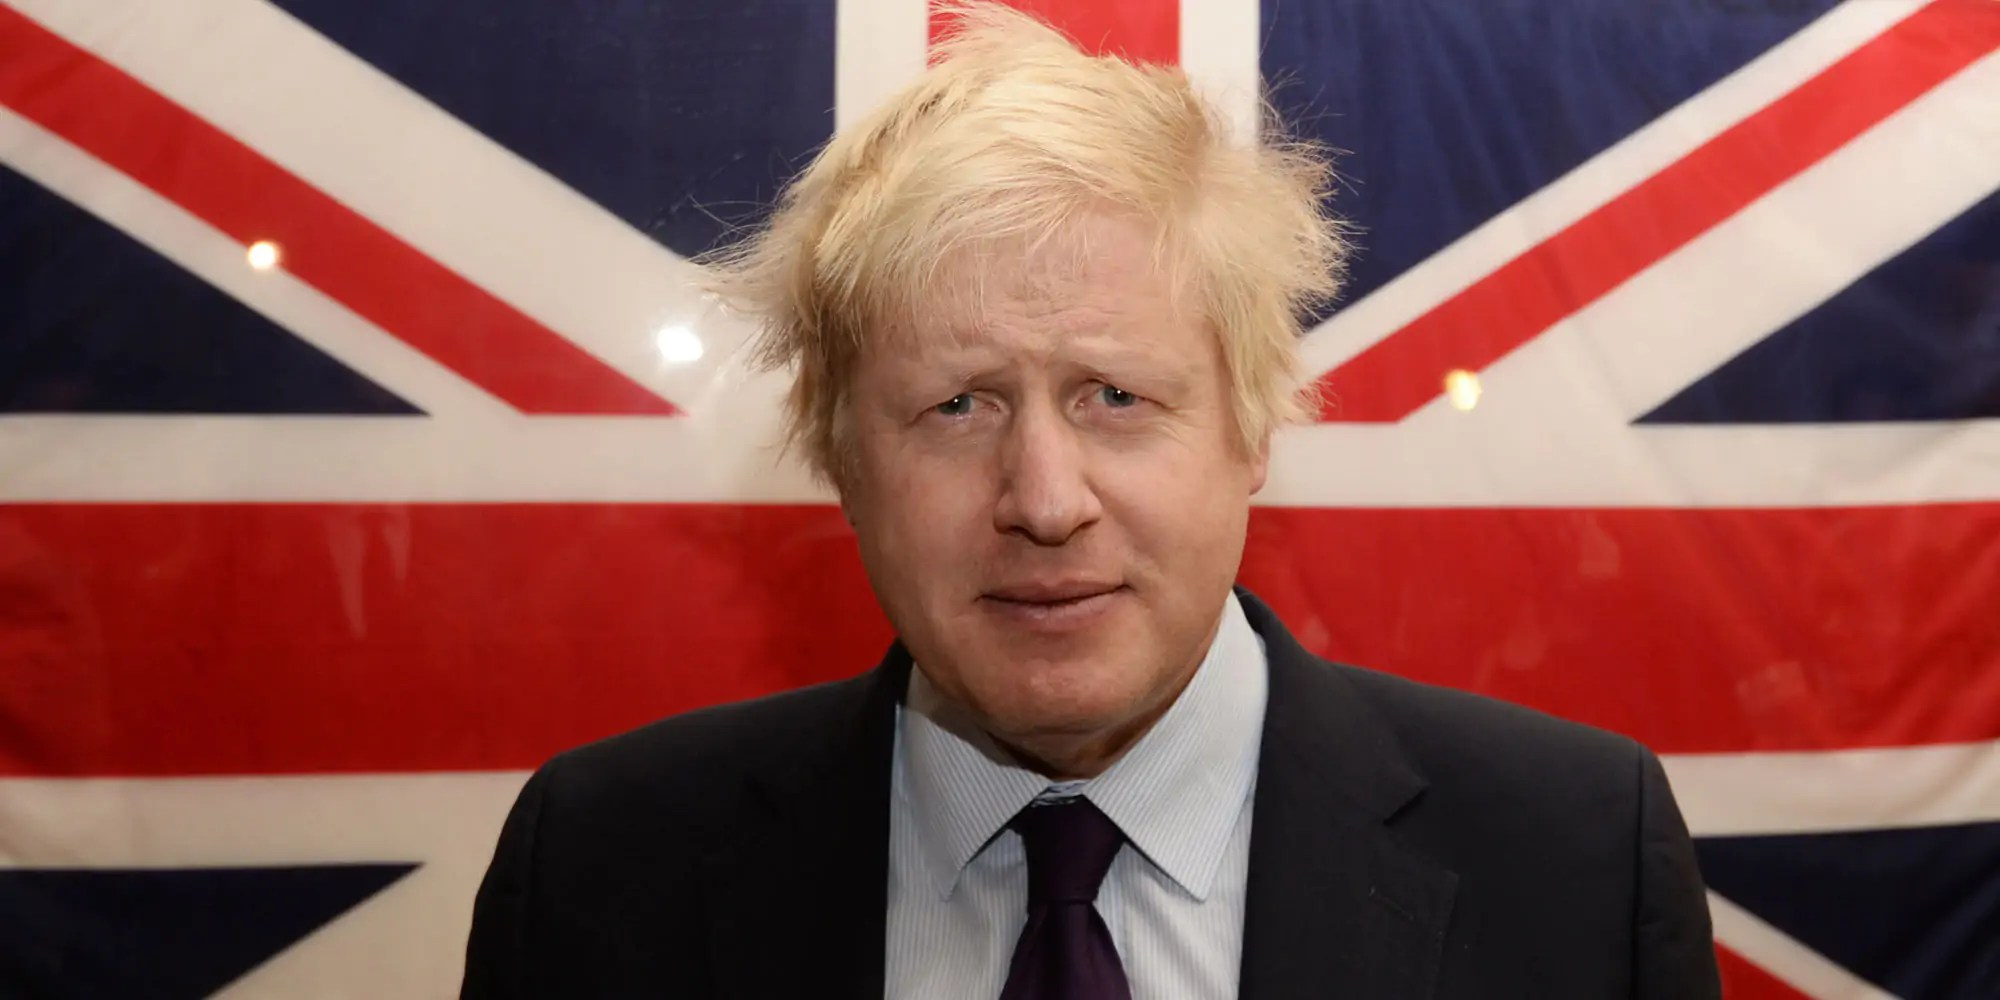 https://i2.wp.com/www.republica.com/wp-content/uploads/2016/02/BORIS-JOHNSON.jpg